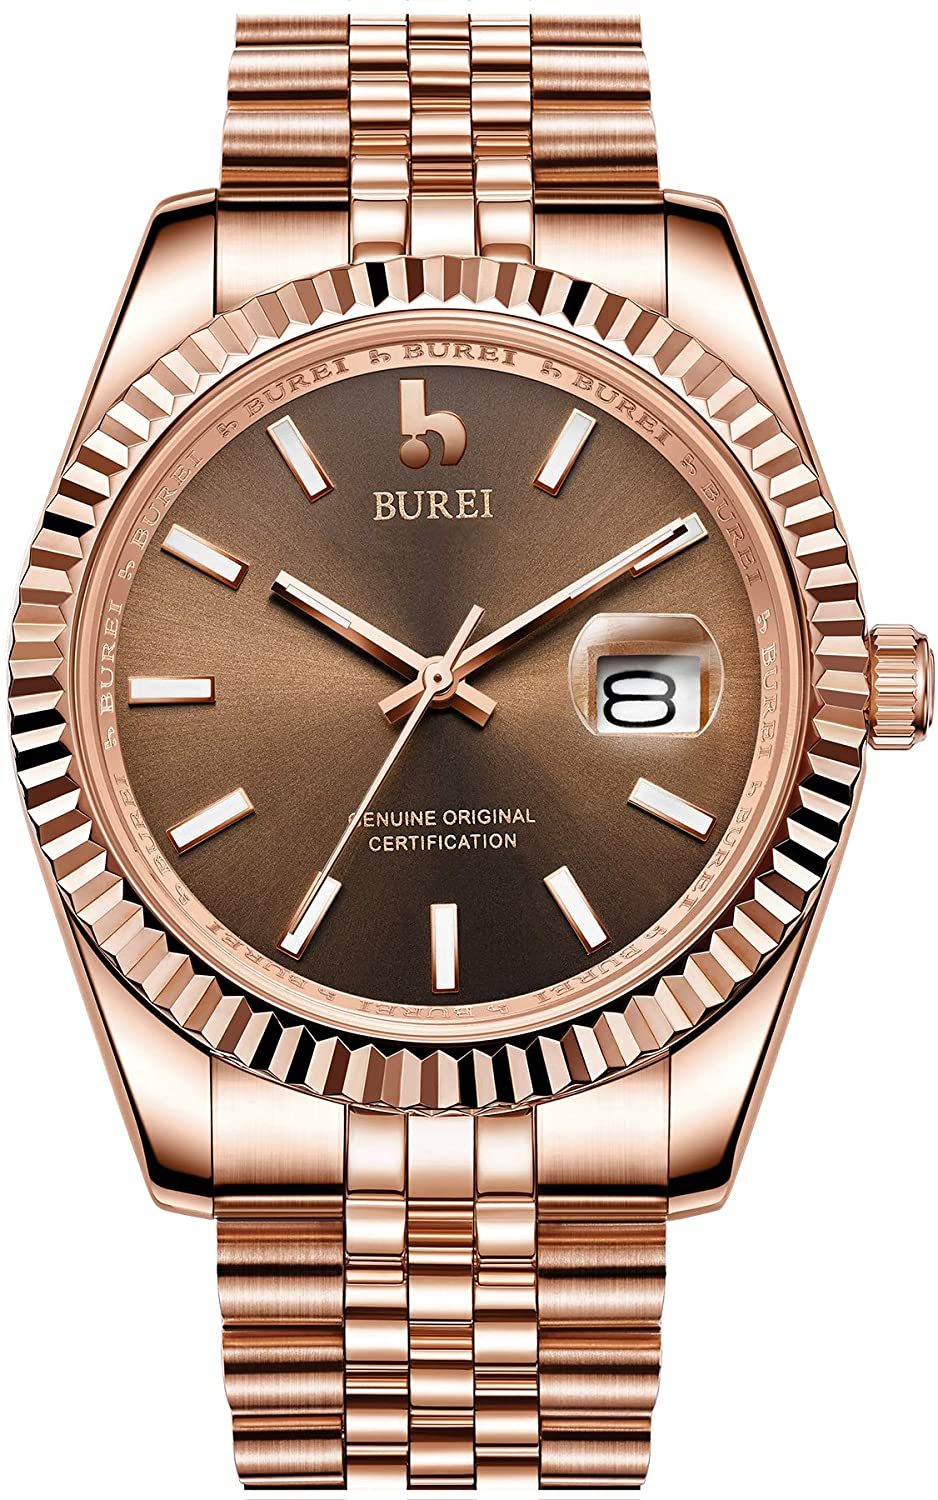 BUREI Men's Automatic Wristwatch Elegant Model Classic Design Synthetic Sapphire Glass Stainless Steel Case and Band